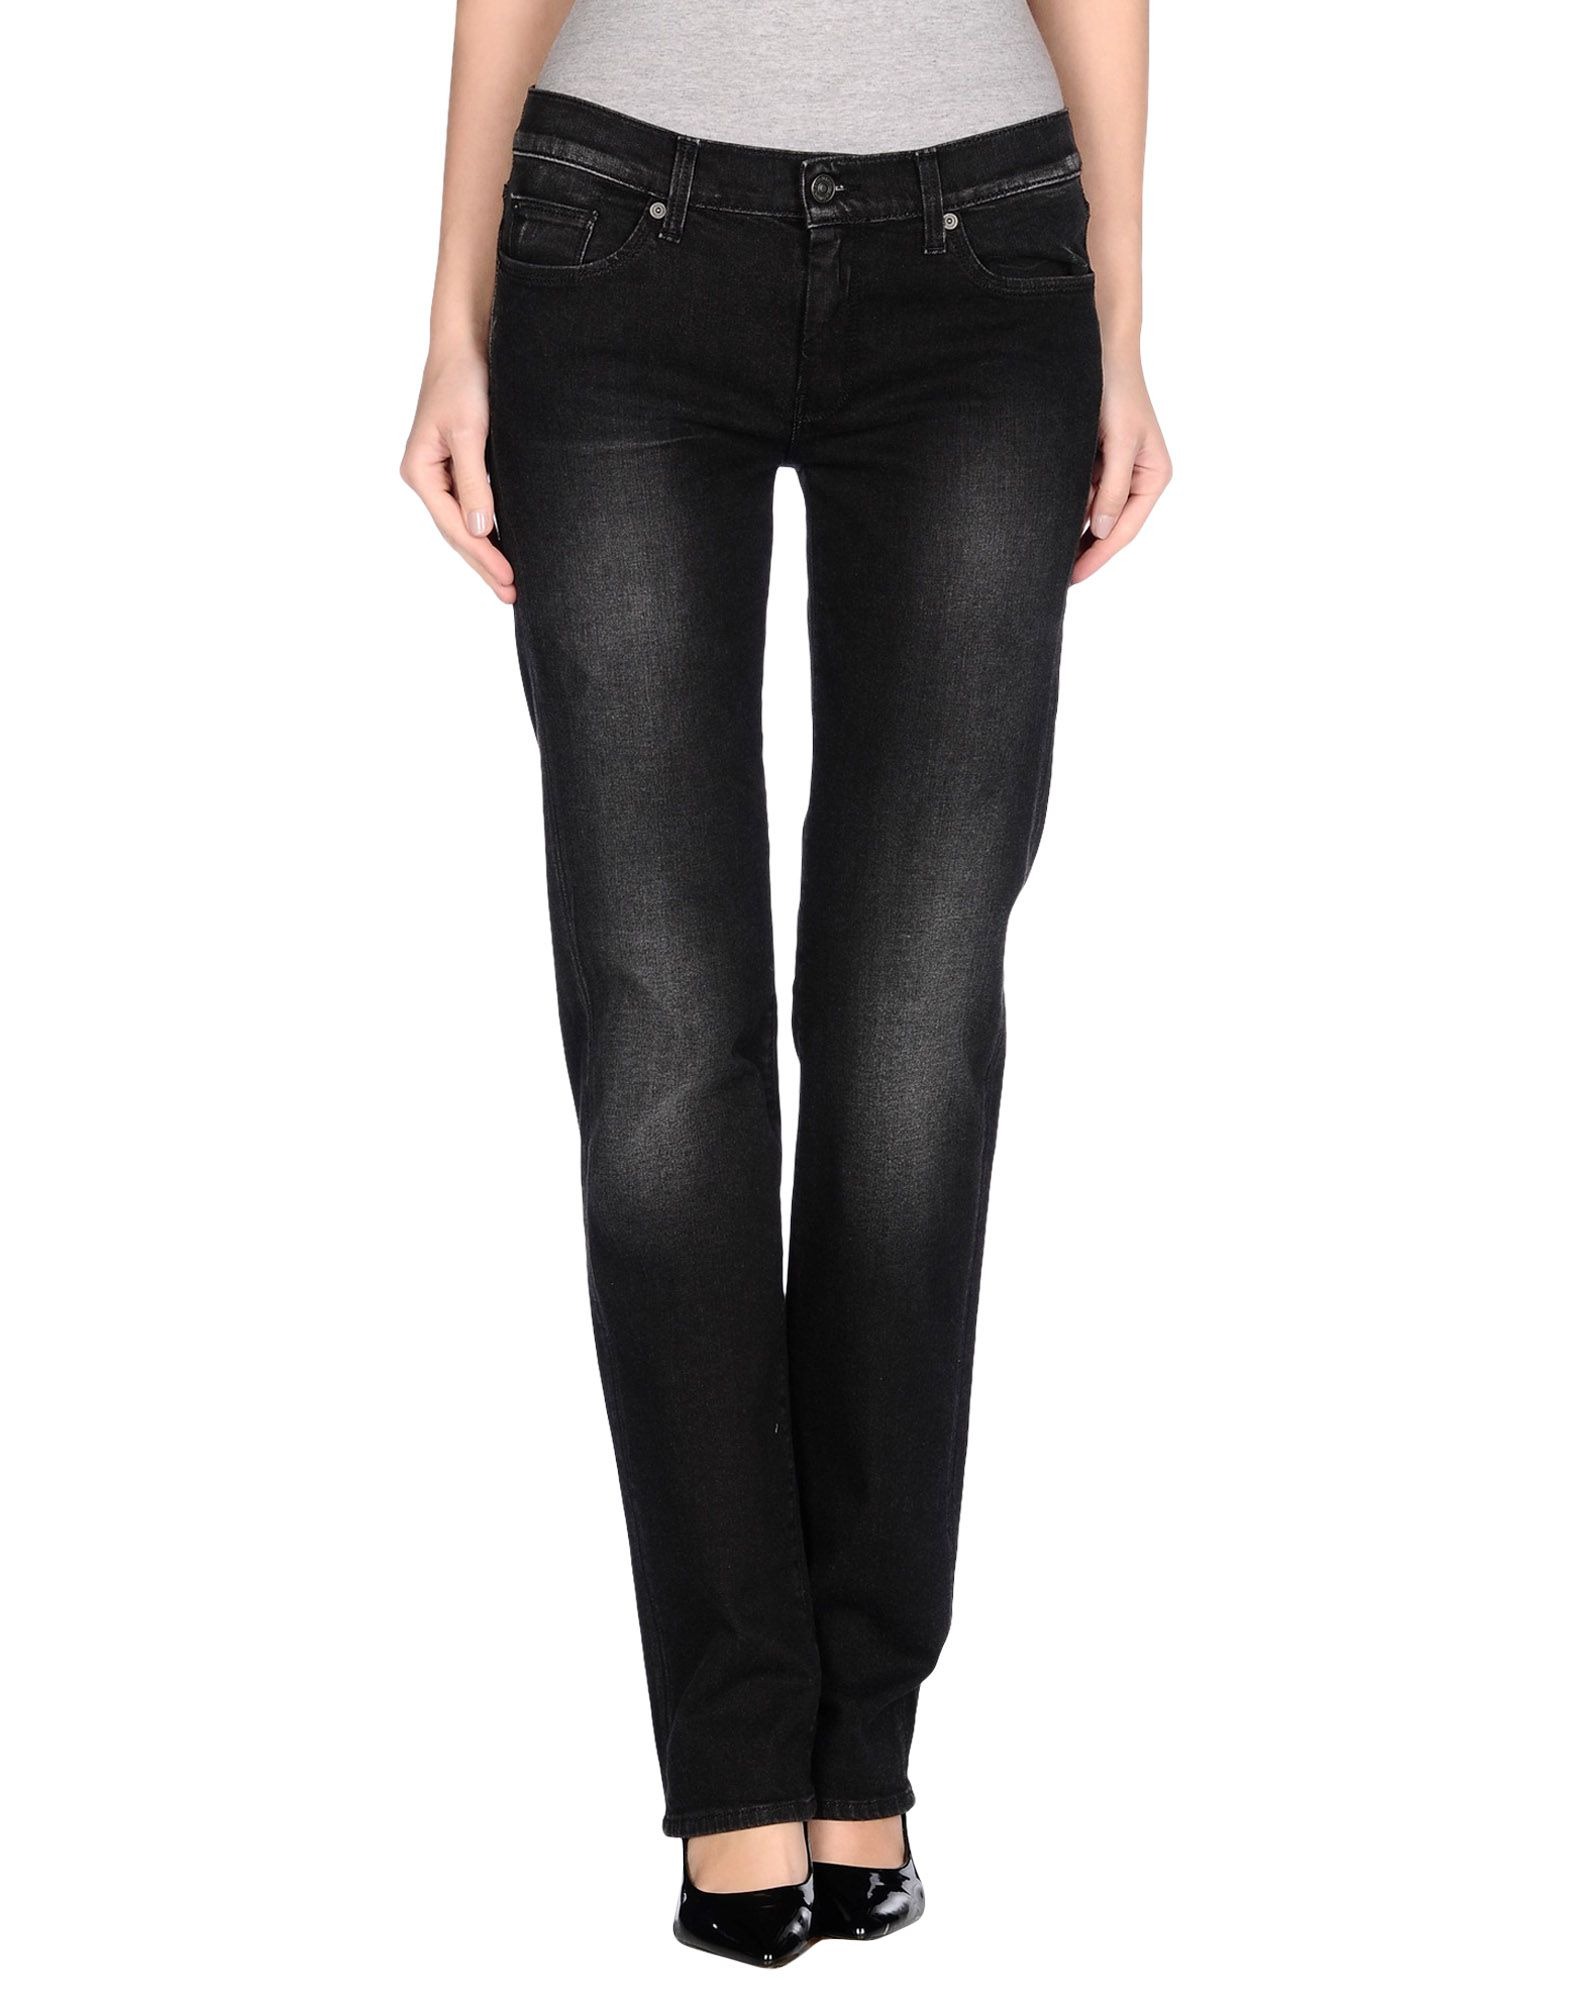 7 for all mankind denim trousers in black lyst. Black Bedroom Furniture Sets. Home Design Ideas